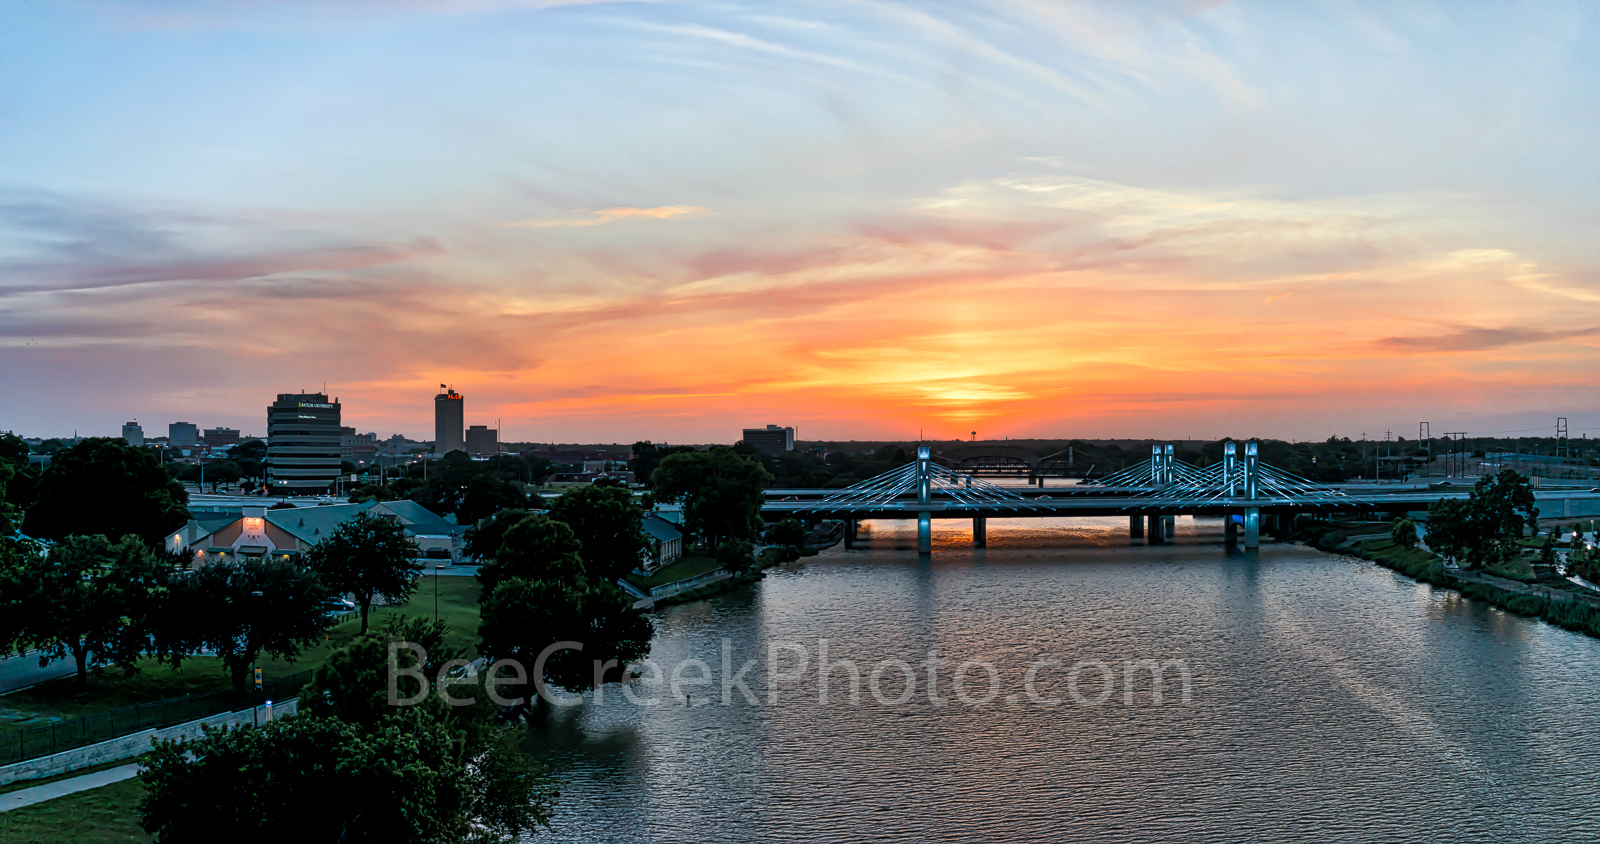 Waco, skyline, cityscape, Brazos River bridge, aerial, sunset, downtown, IH35 stay bridge, orange glow, dusk, colorful led, texas, Jack Kultgen Freeway,pano, panorama, Alcoa, Baylor University Tower, , photo